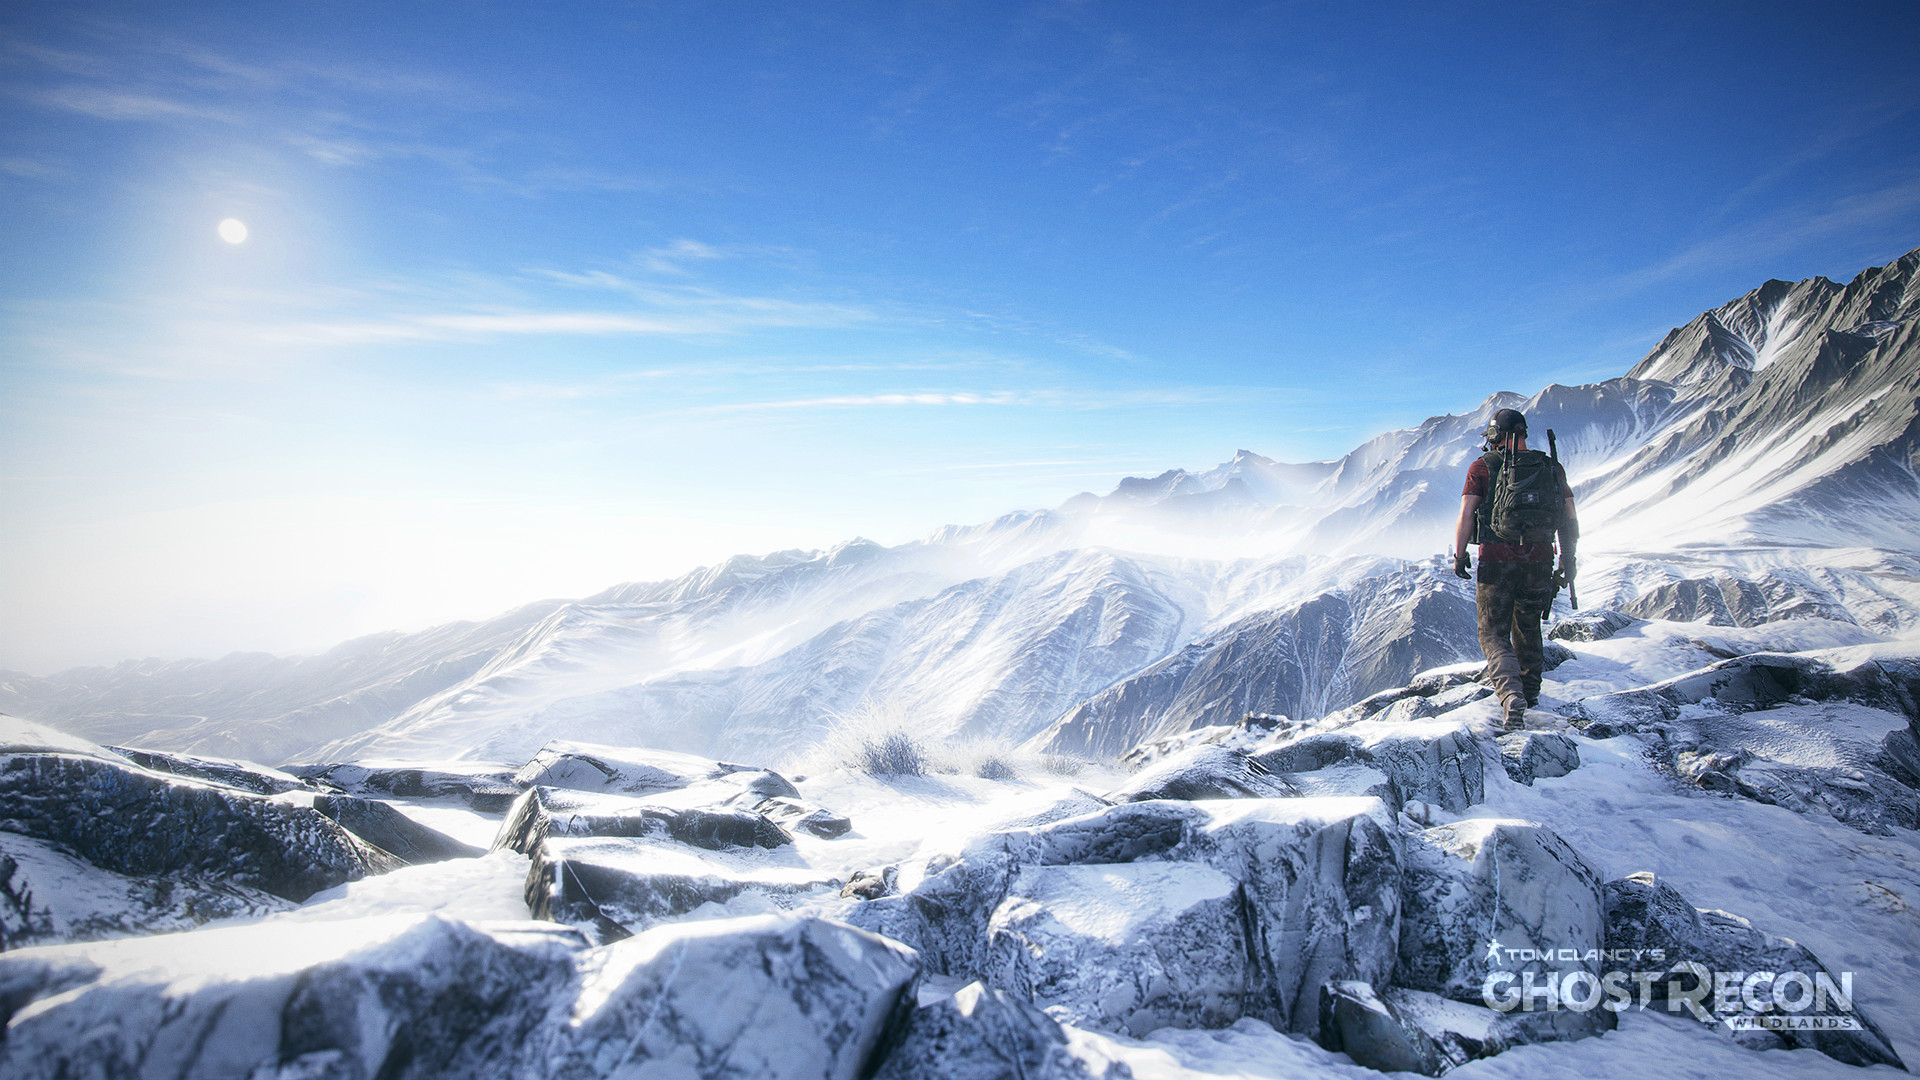 ghost recon wildlands review 3 tom clancy's ghost recon wildlands review (ps4),How To Invite Friends On Ghost Recon Wildlands